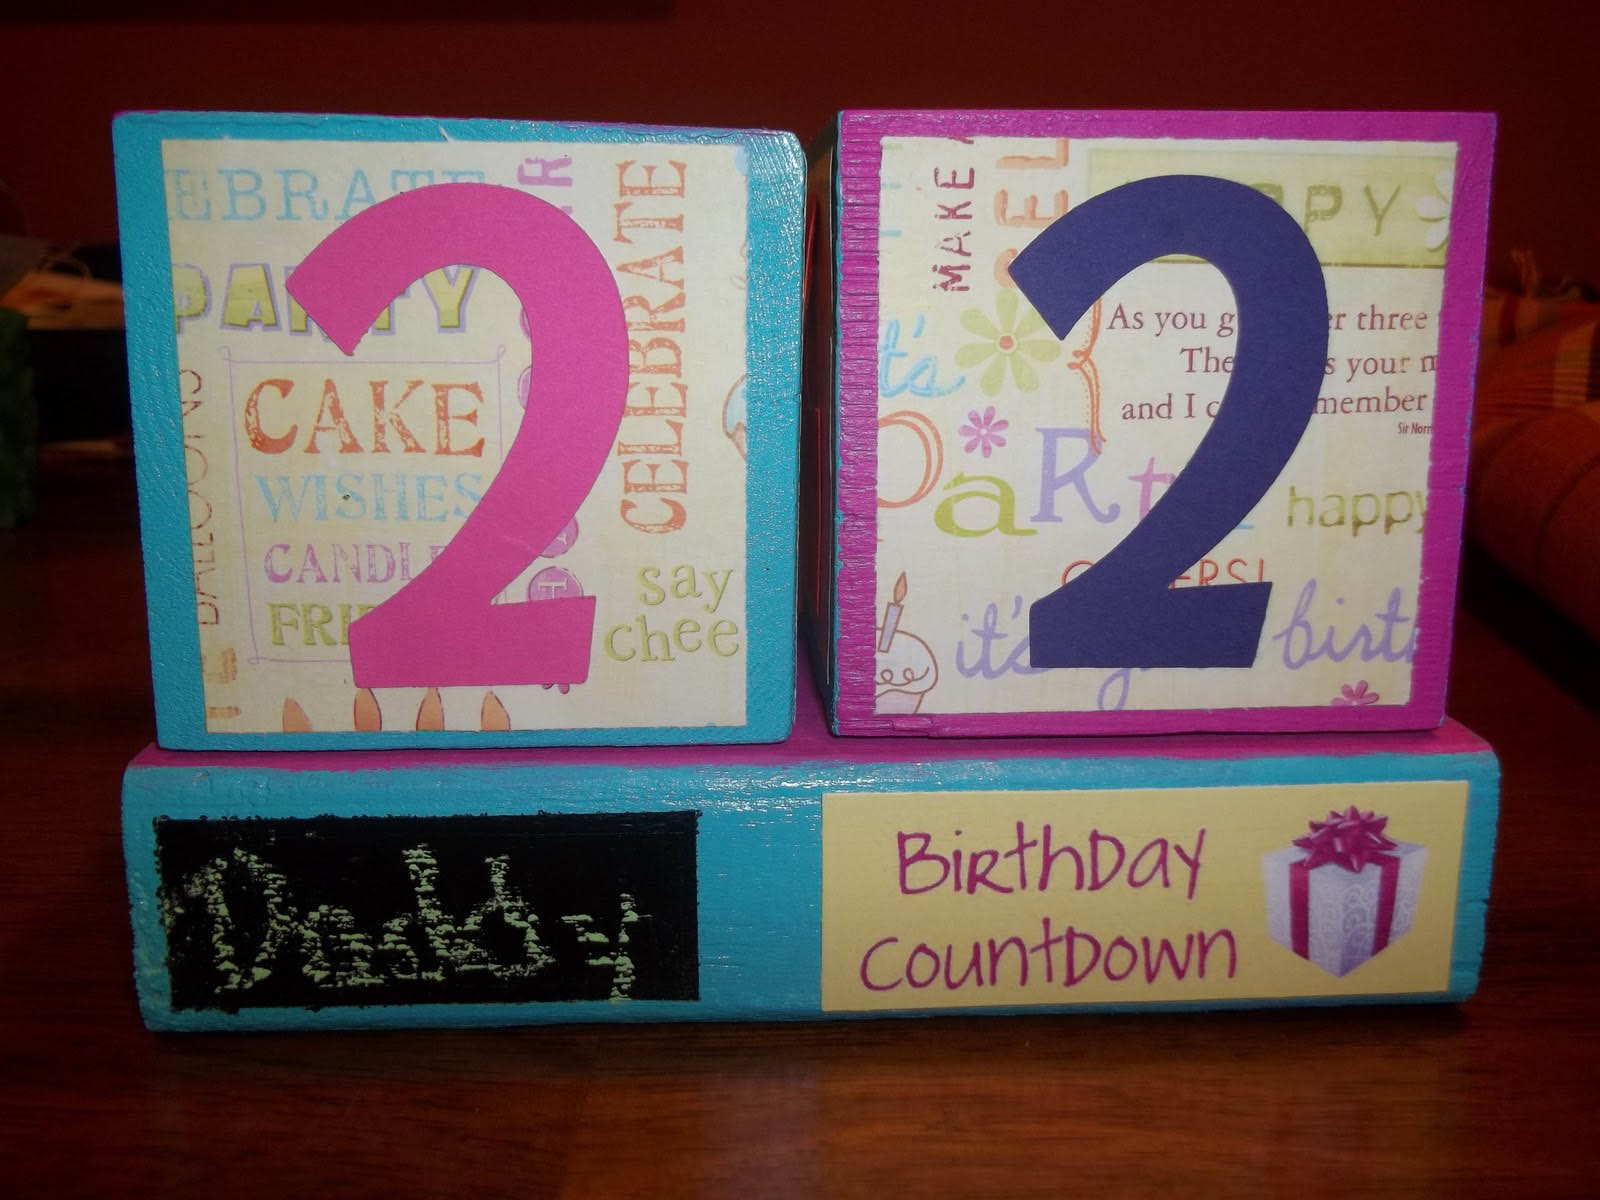 Birthday Countdown Cute Wallpapers for Desktop 1600x1200